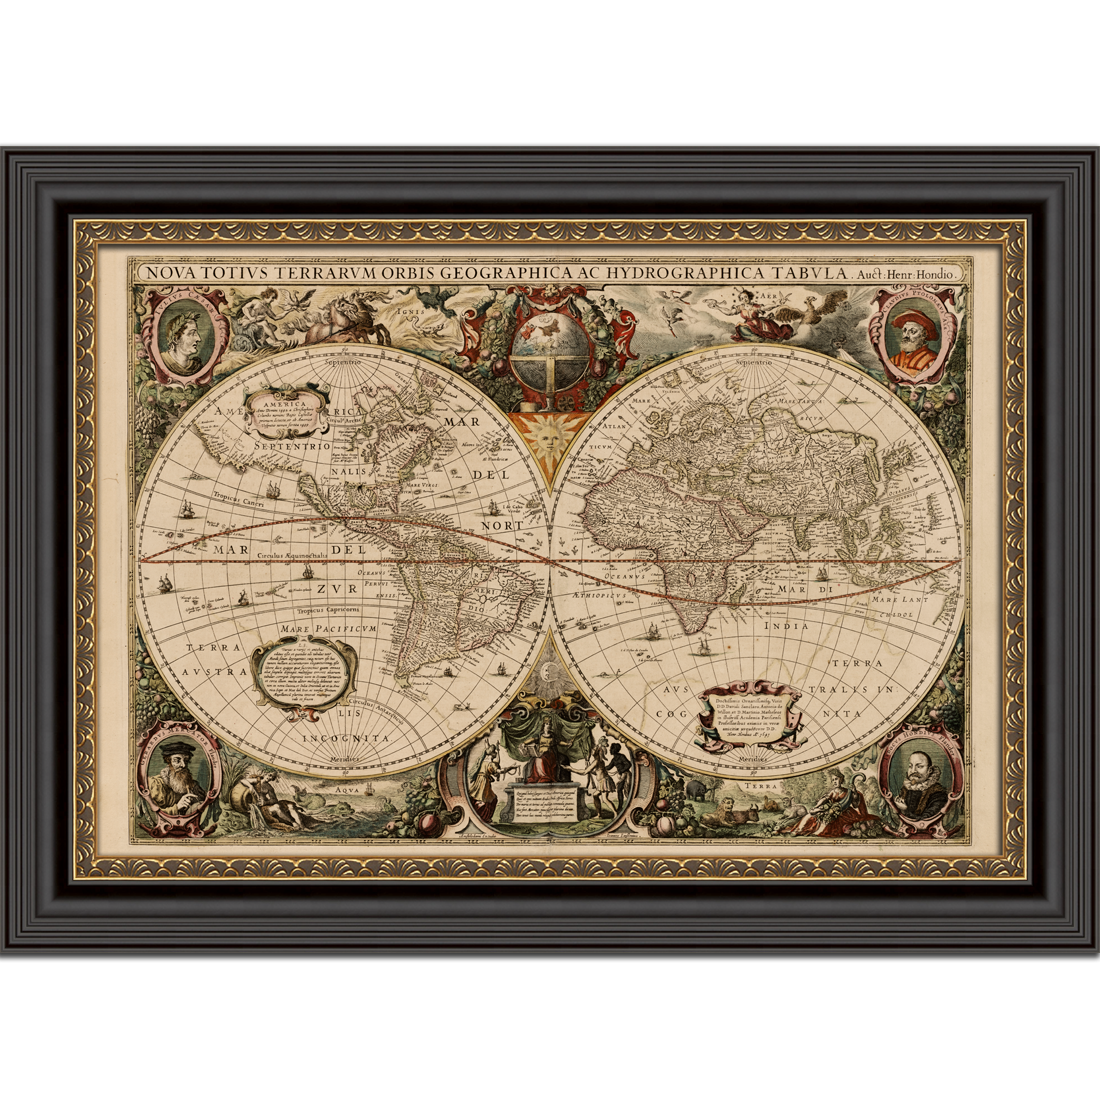 World map nova totius 1641 framed great minds art historic nova totivs 1641 gumiabroncs Choice Image